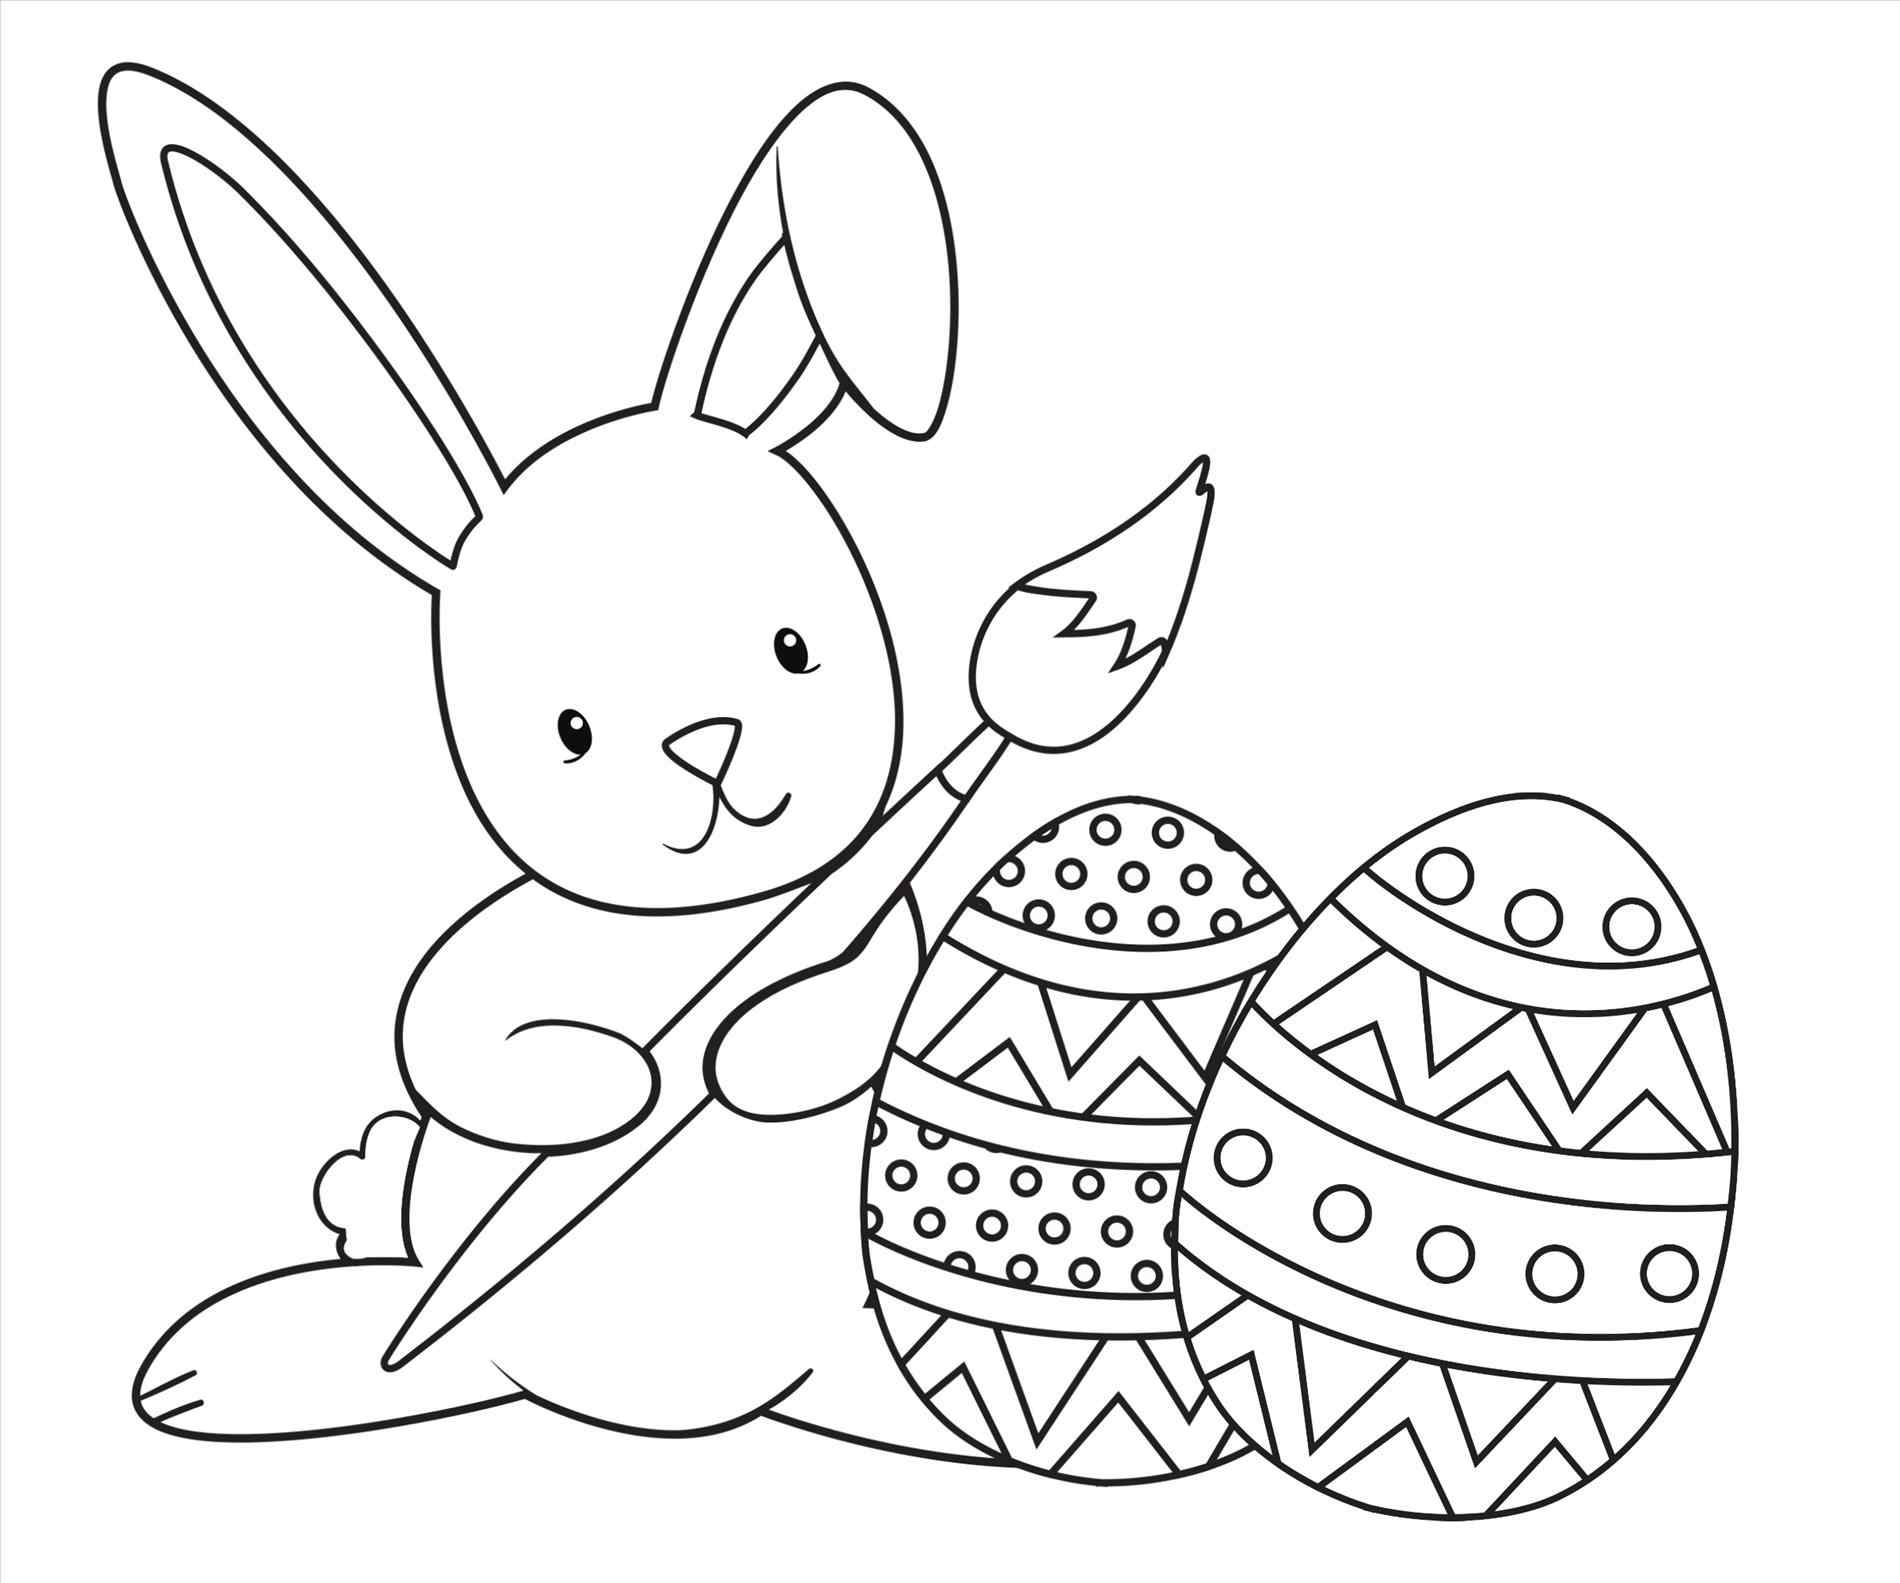 easter bunny rabbit coloring pages | Bunny Line Drawing at GetDrawings.com | Free for personal ...